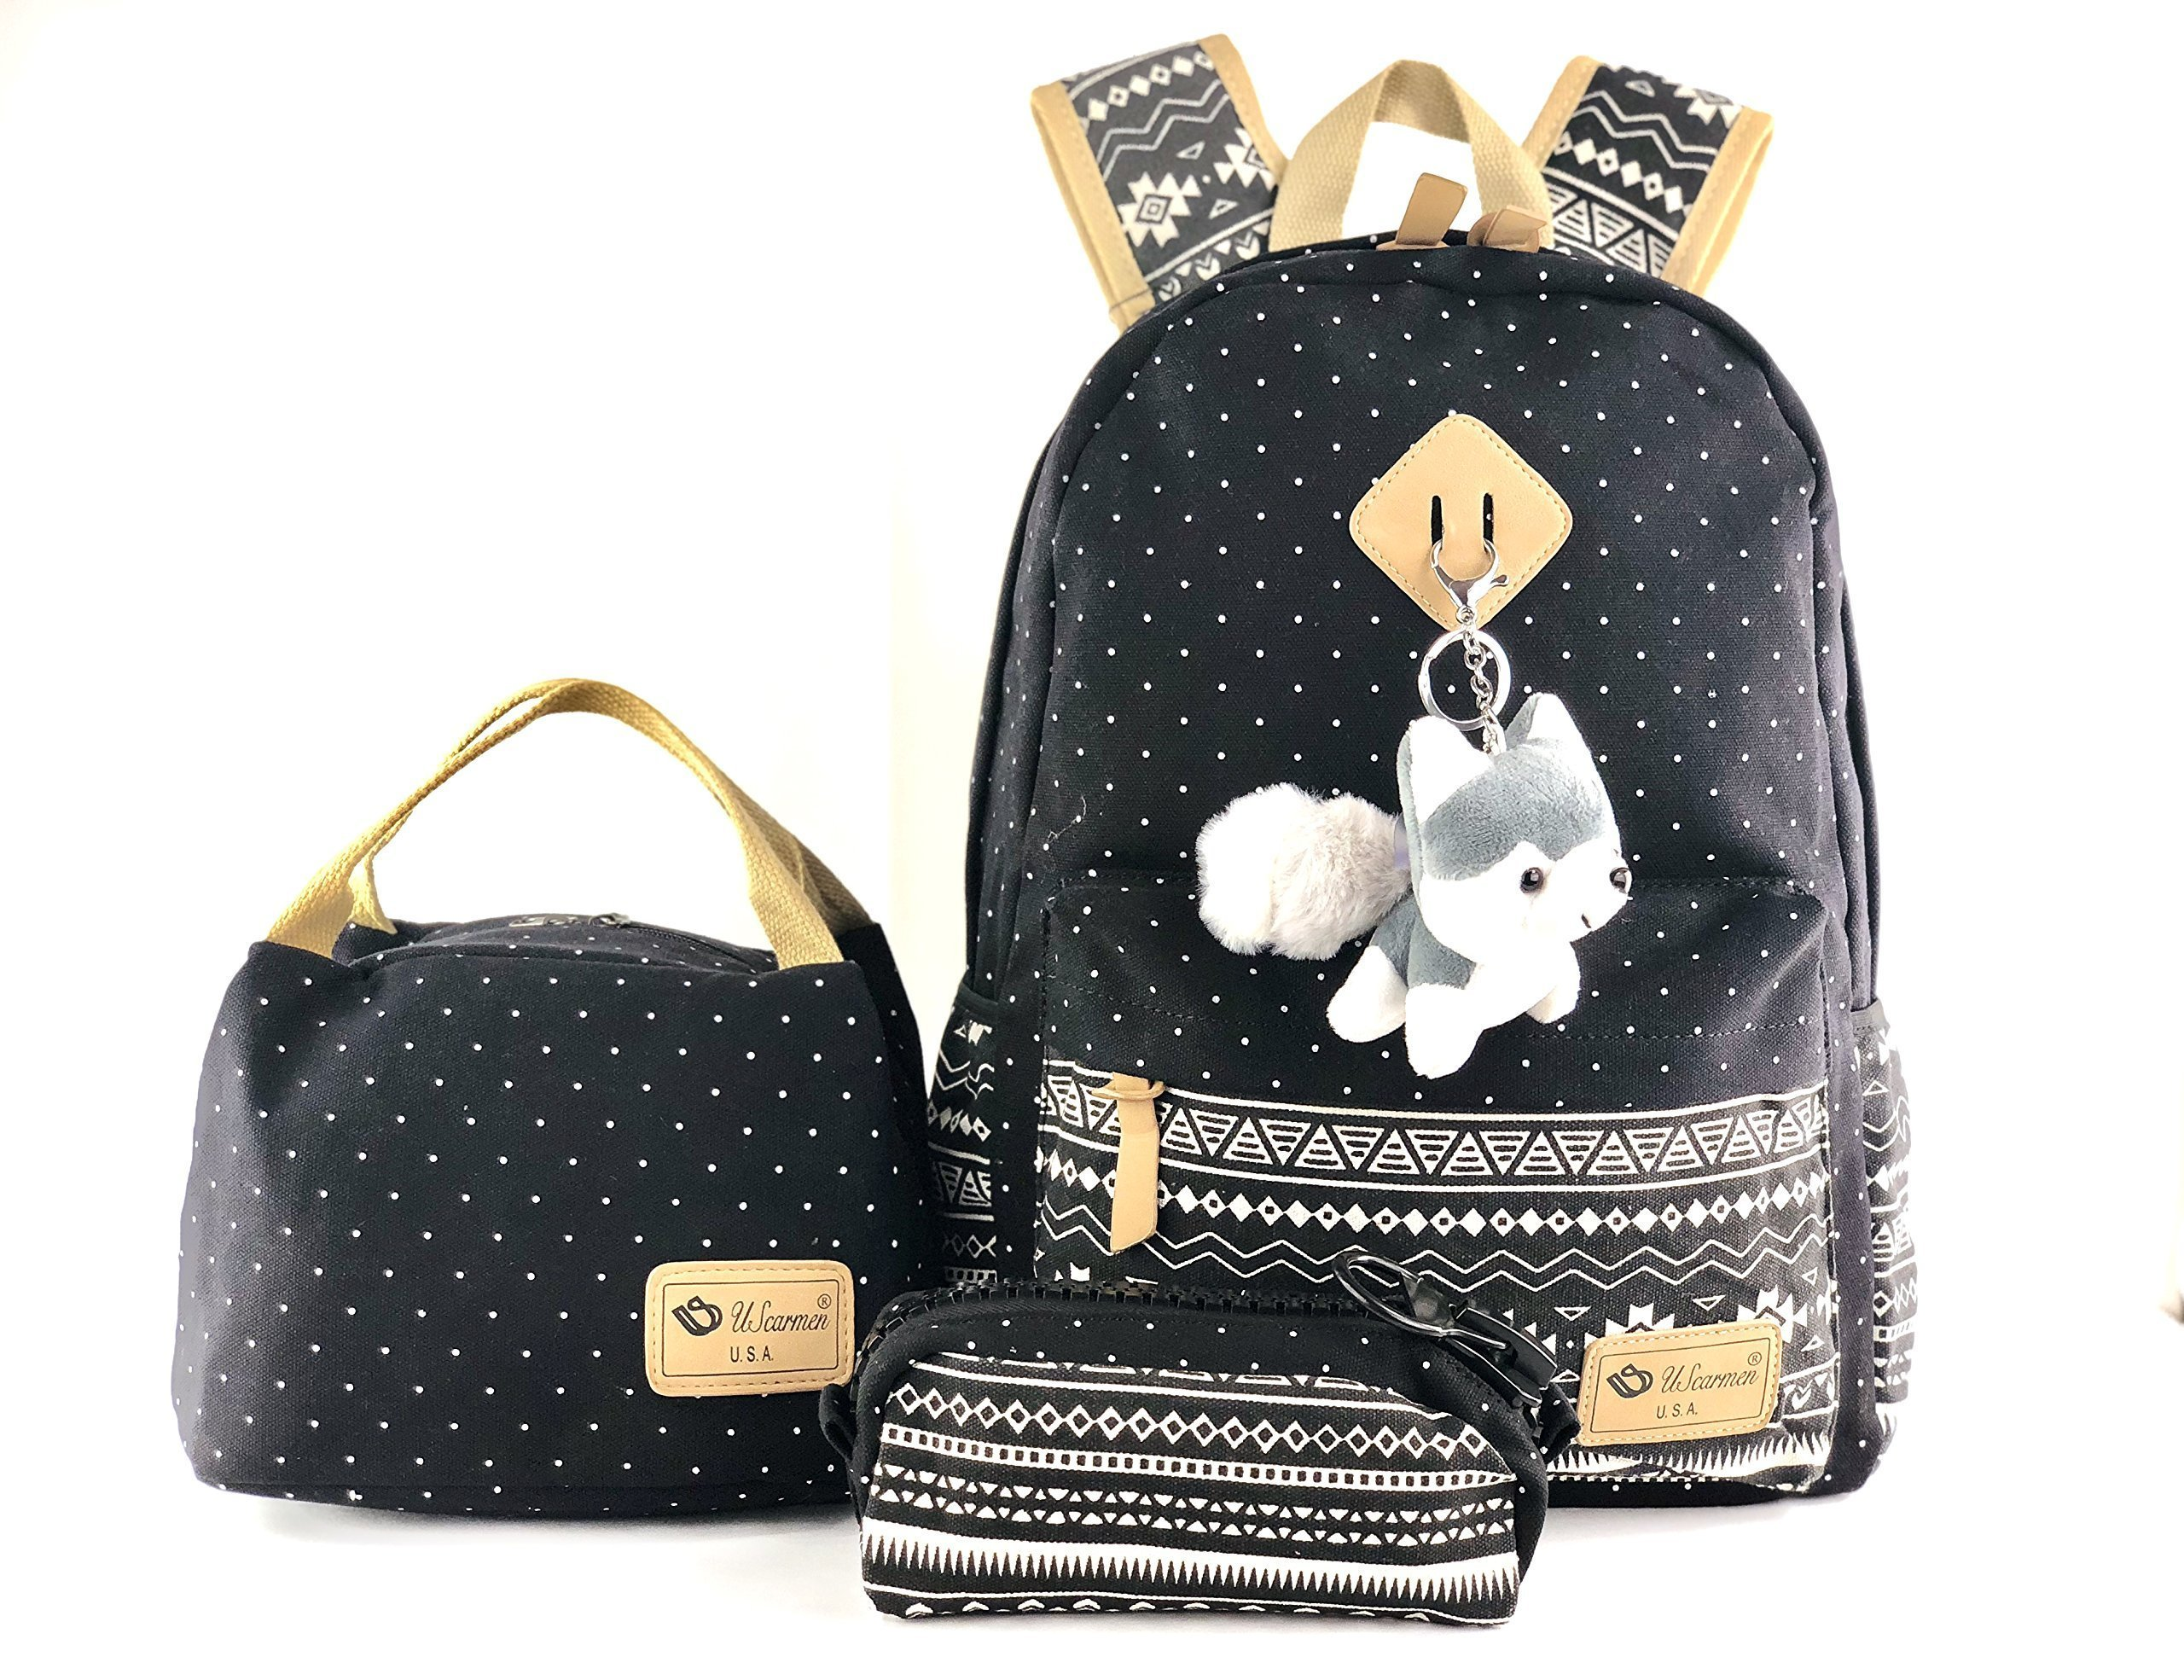 Women's boy's girl canvas backpack, lunch bag, pouch bag 3Pcs. set for school bag daypack laptop bag (Black With Toy)